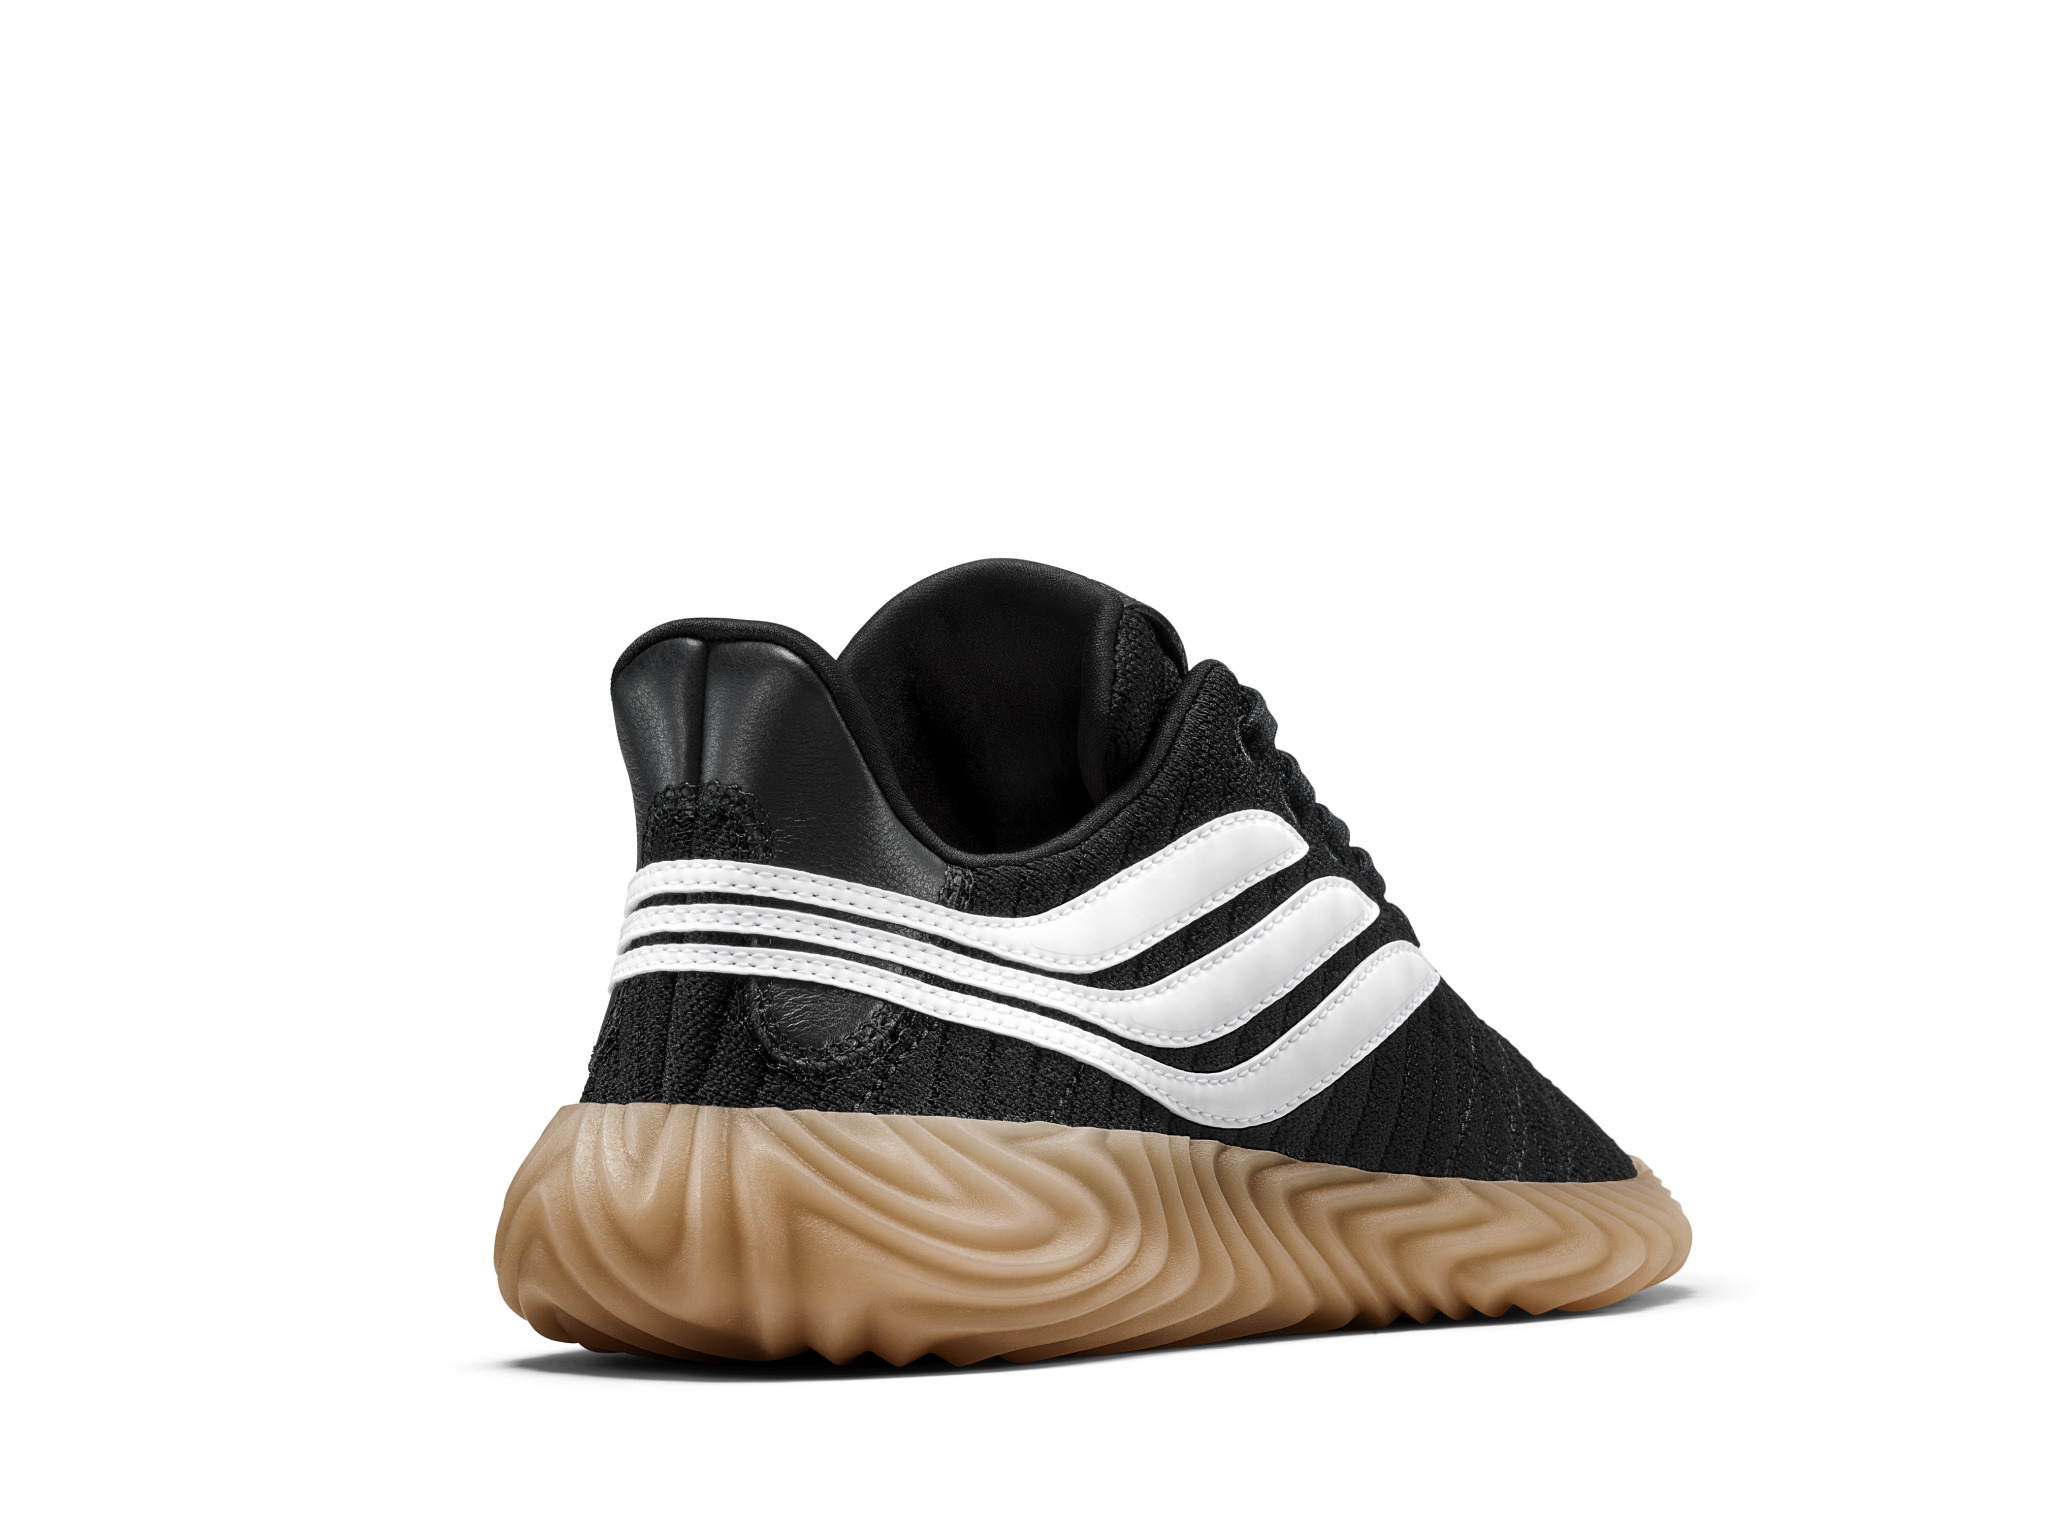 True passion meets raw emotion: Introducing the Sobakov from Adidas